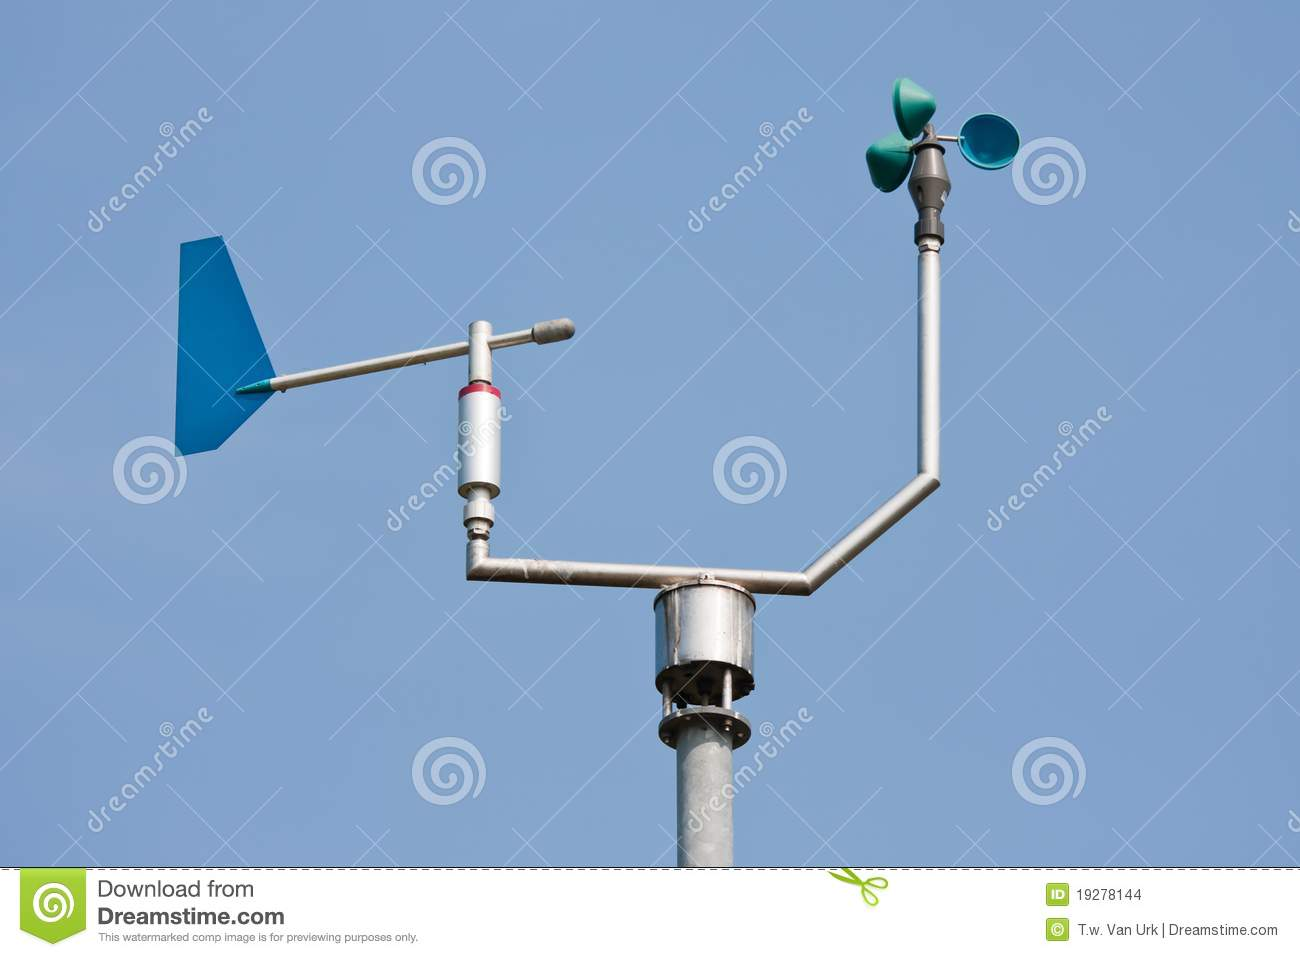 Anemometer Measuring Wind Speed And Direction Stock Photo